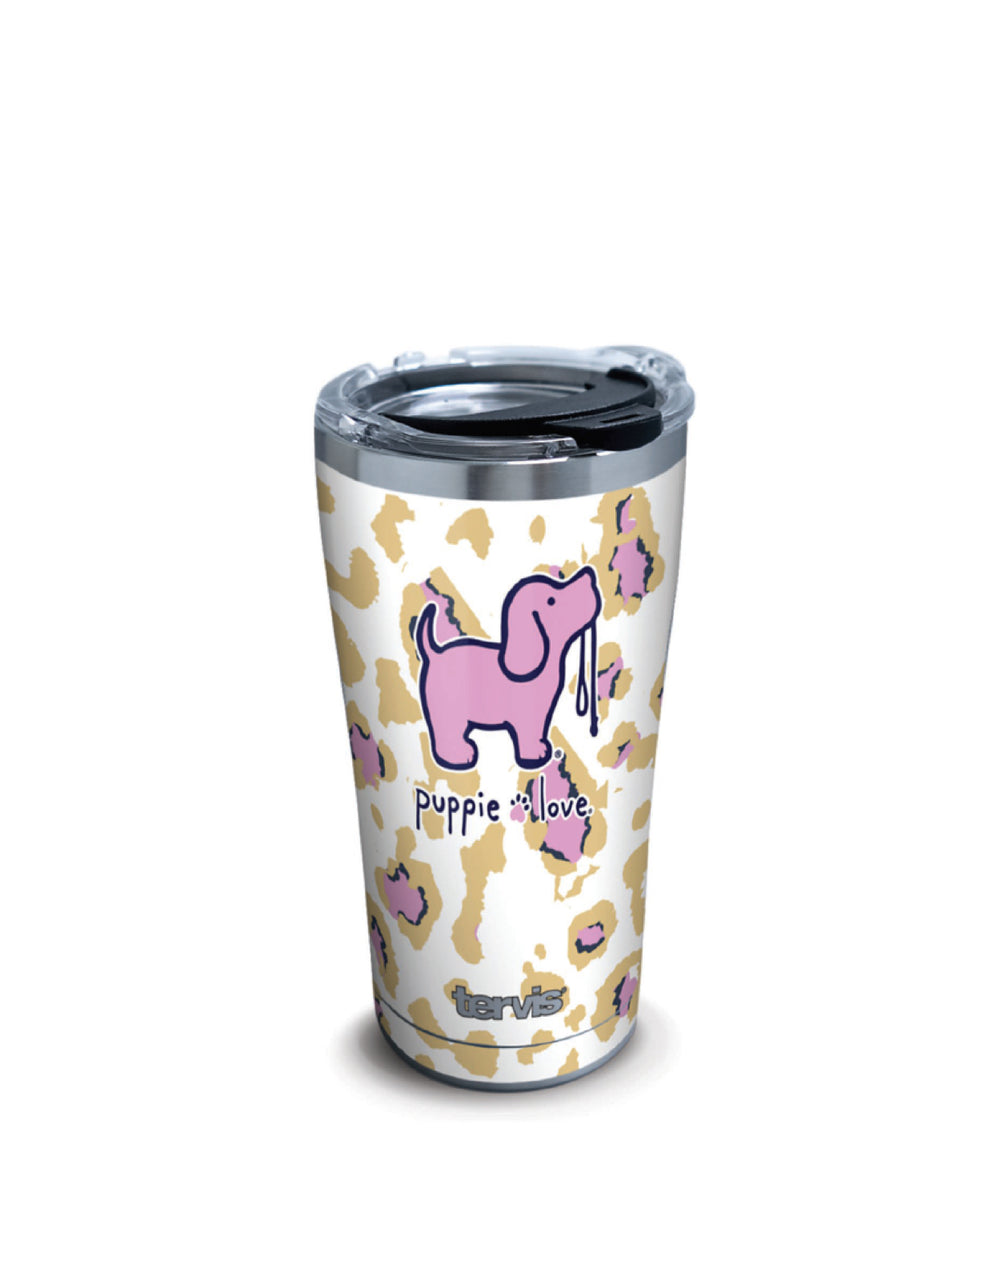 LEOPARD PUP 20oz STAINLESS STEEL TUMBLER - Puppie Love